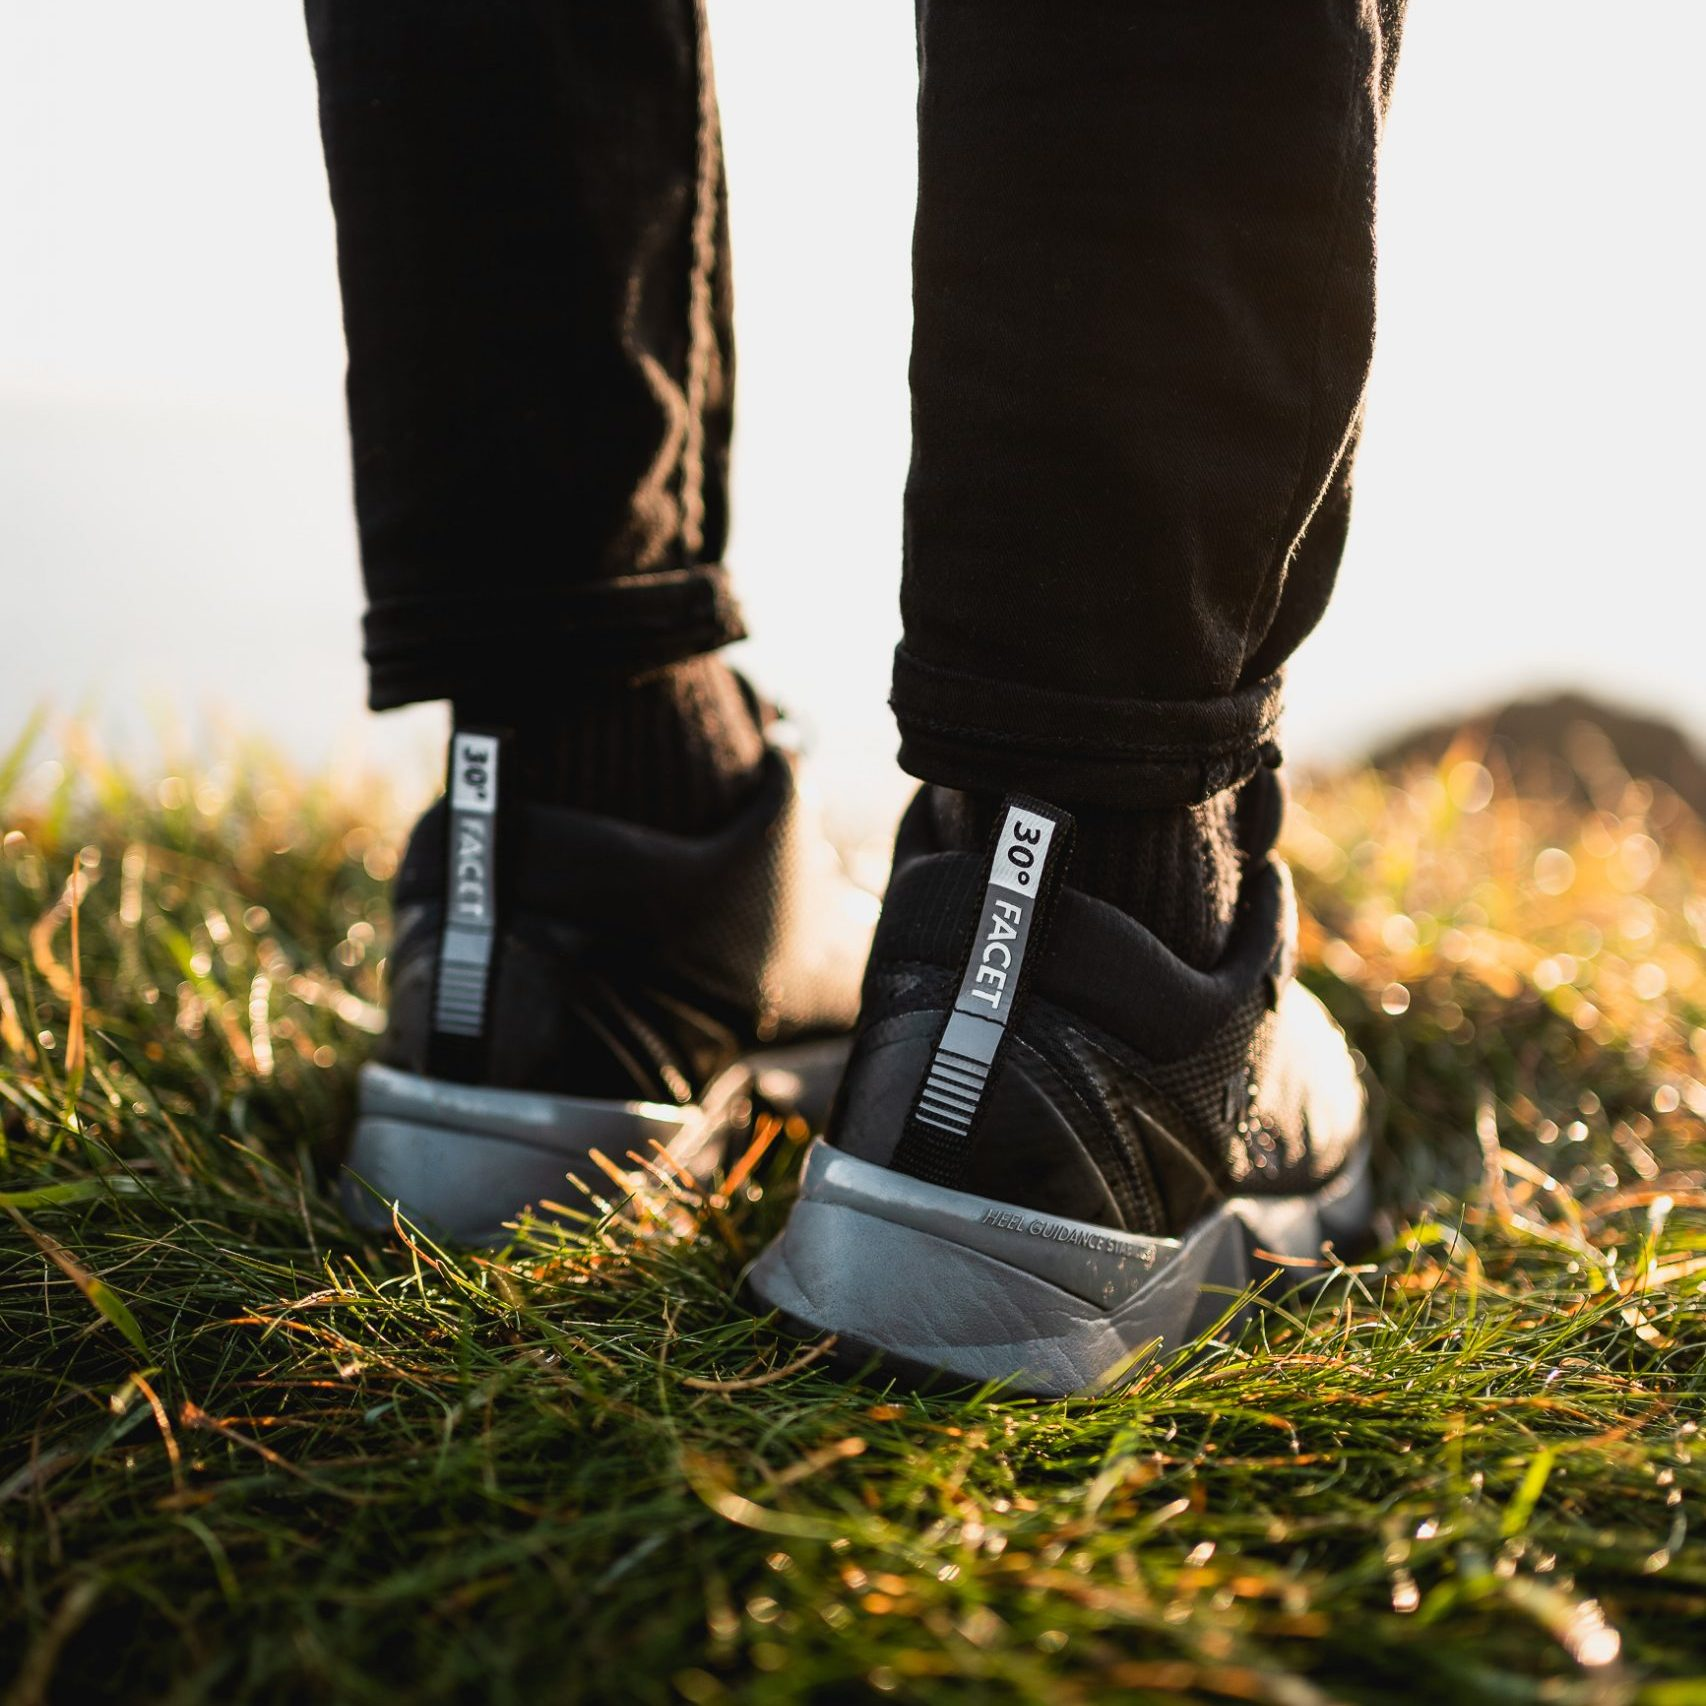 outdoor shoes with some golden grass